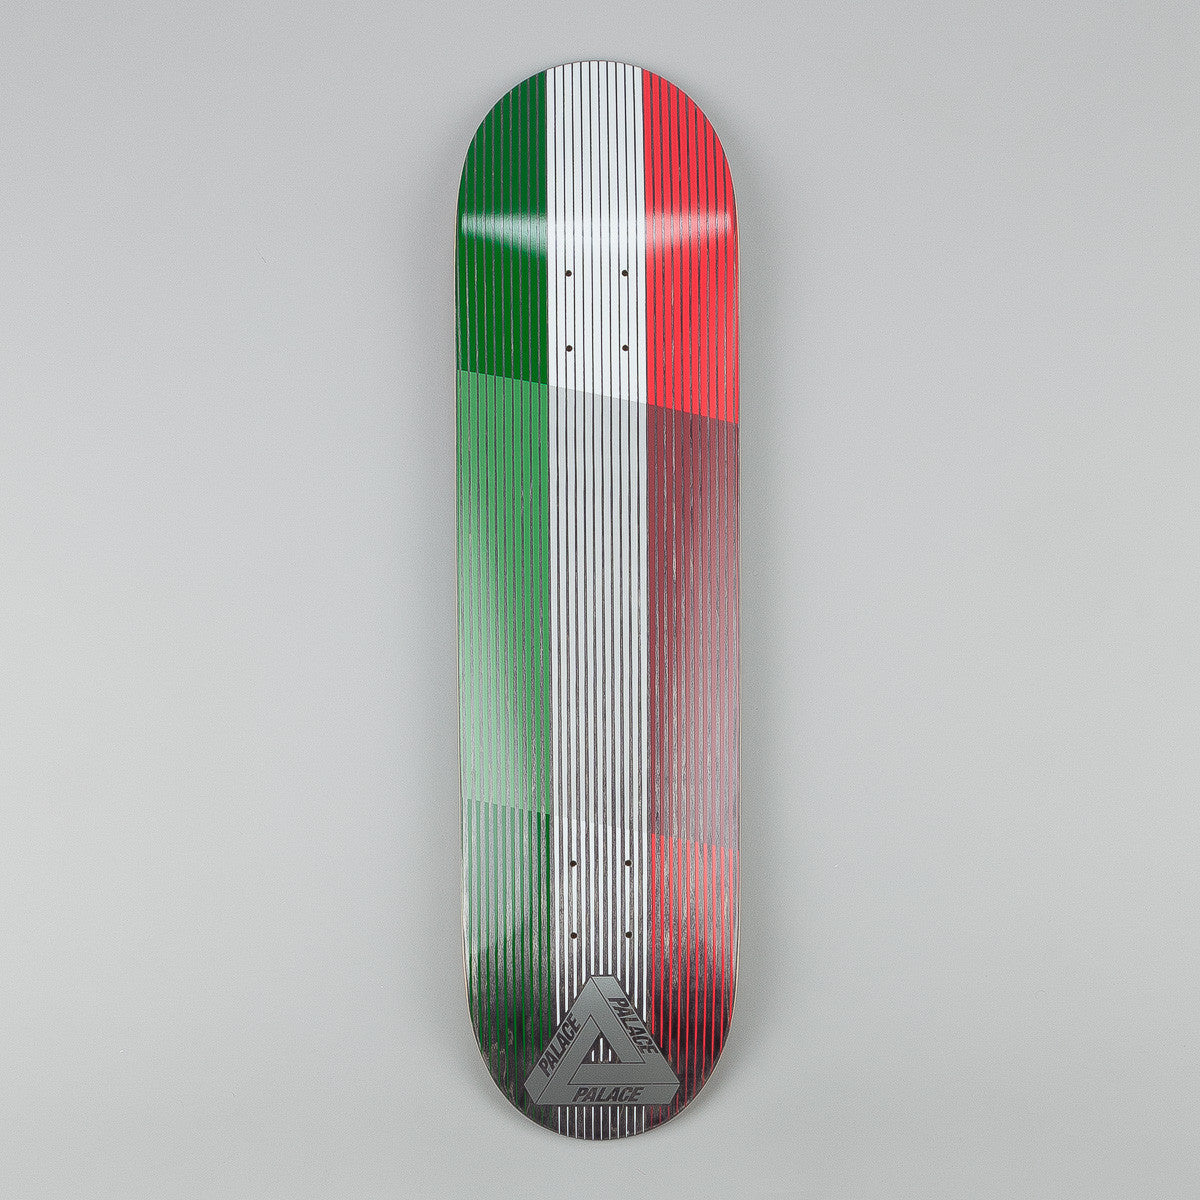 Palace Italia New Linear Deck